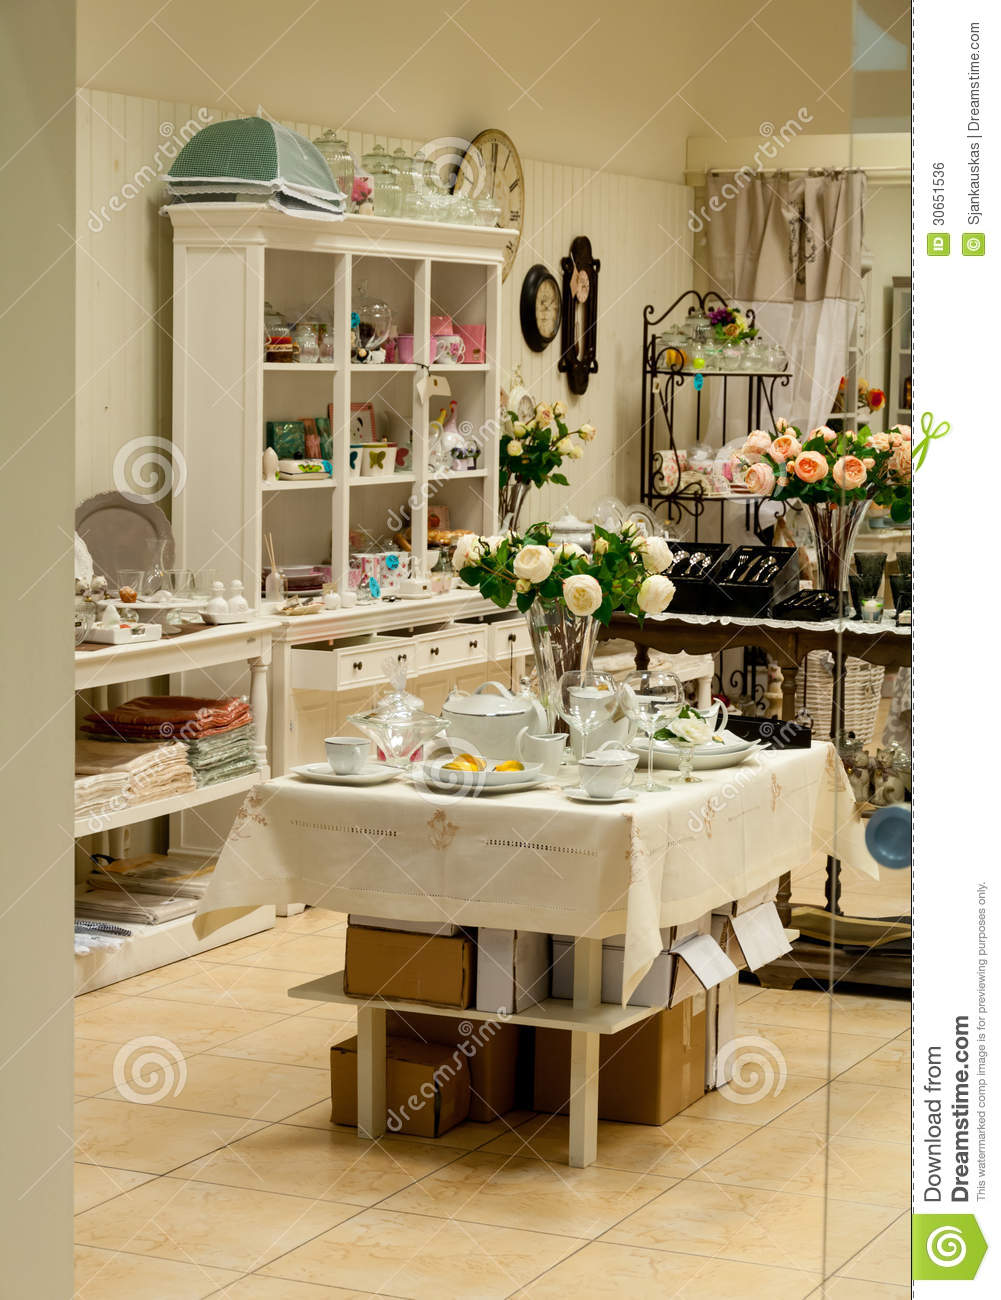 Home decor and dishes shop royalty free stock image for Decoration goods